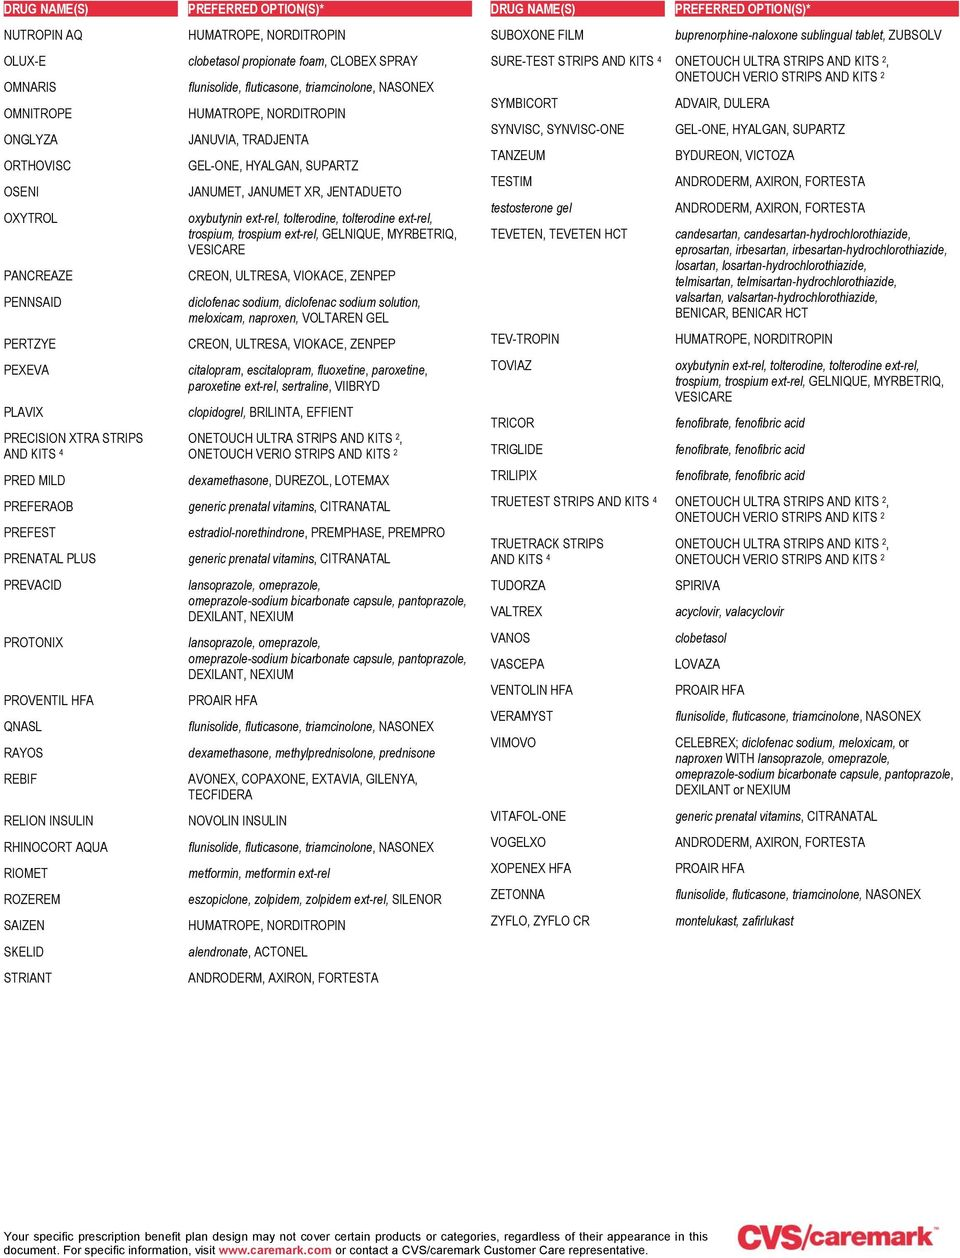 Performance Drug List - PDF